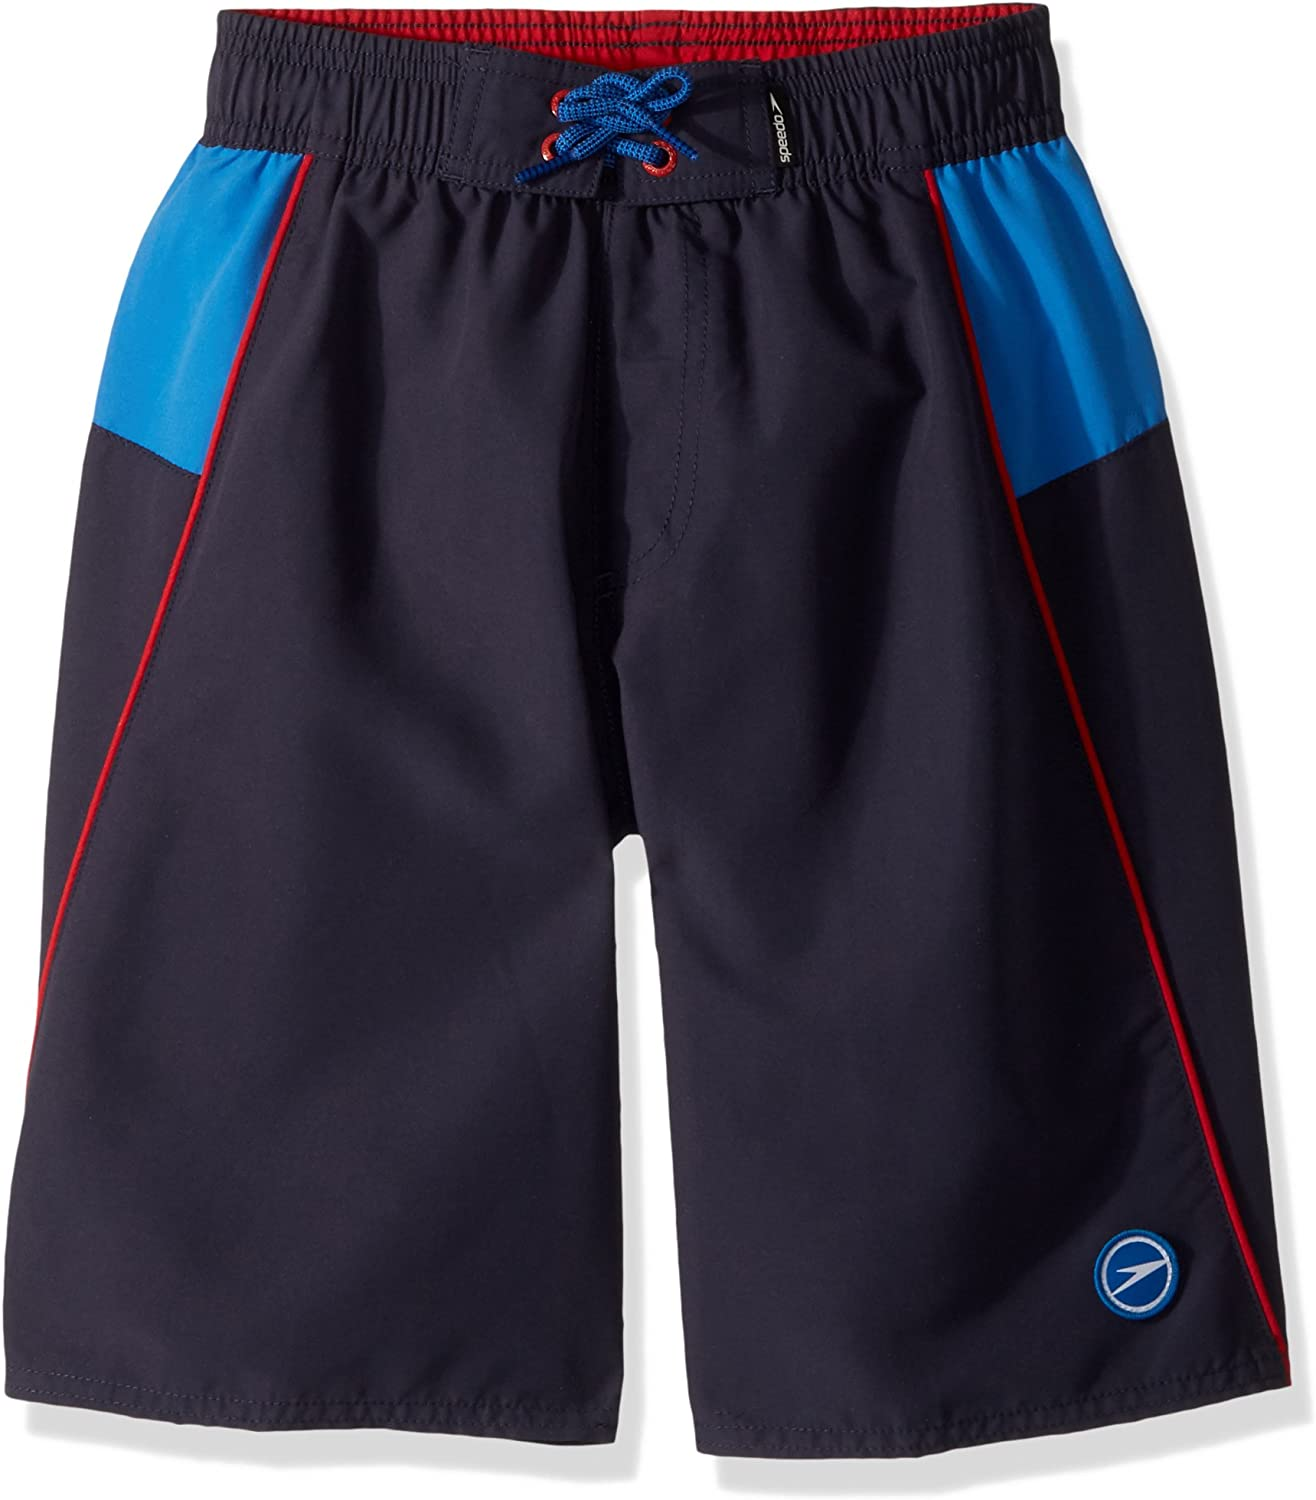 Speedo Boy's Swim Trunk New mail order Solid Volley-Discontinued Length Knee Outlet ☆ Free Shipping